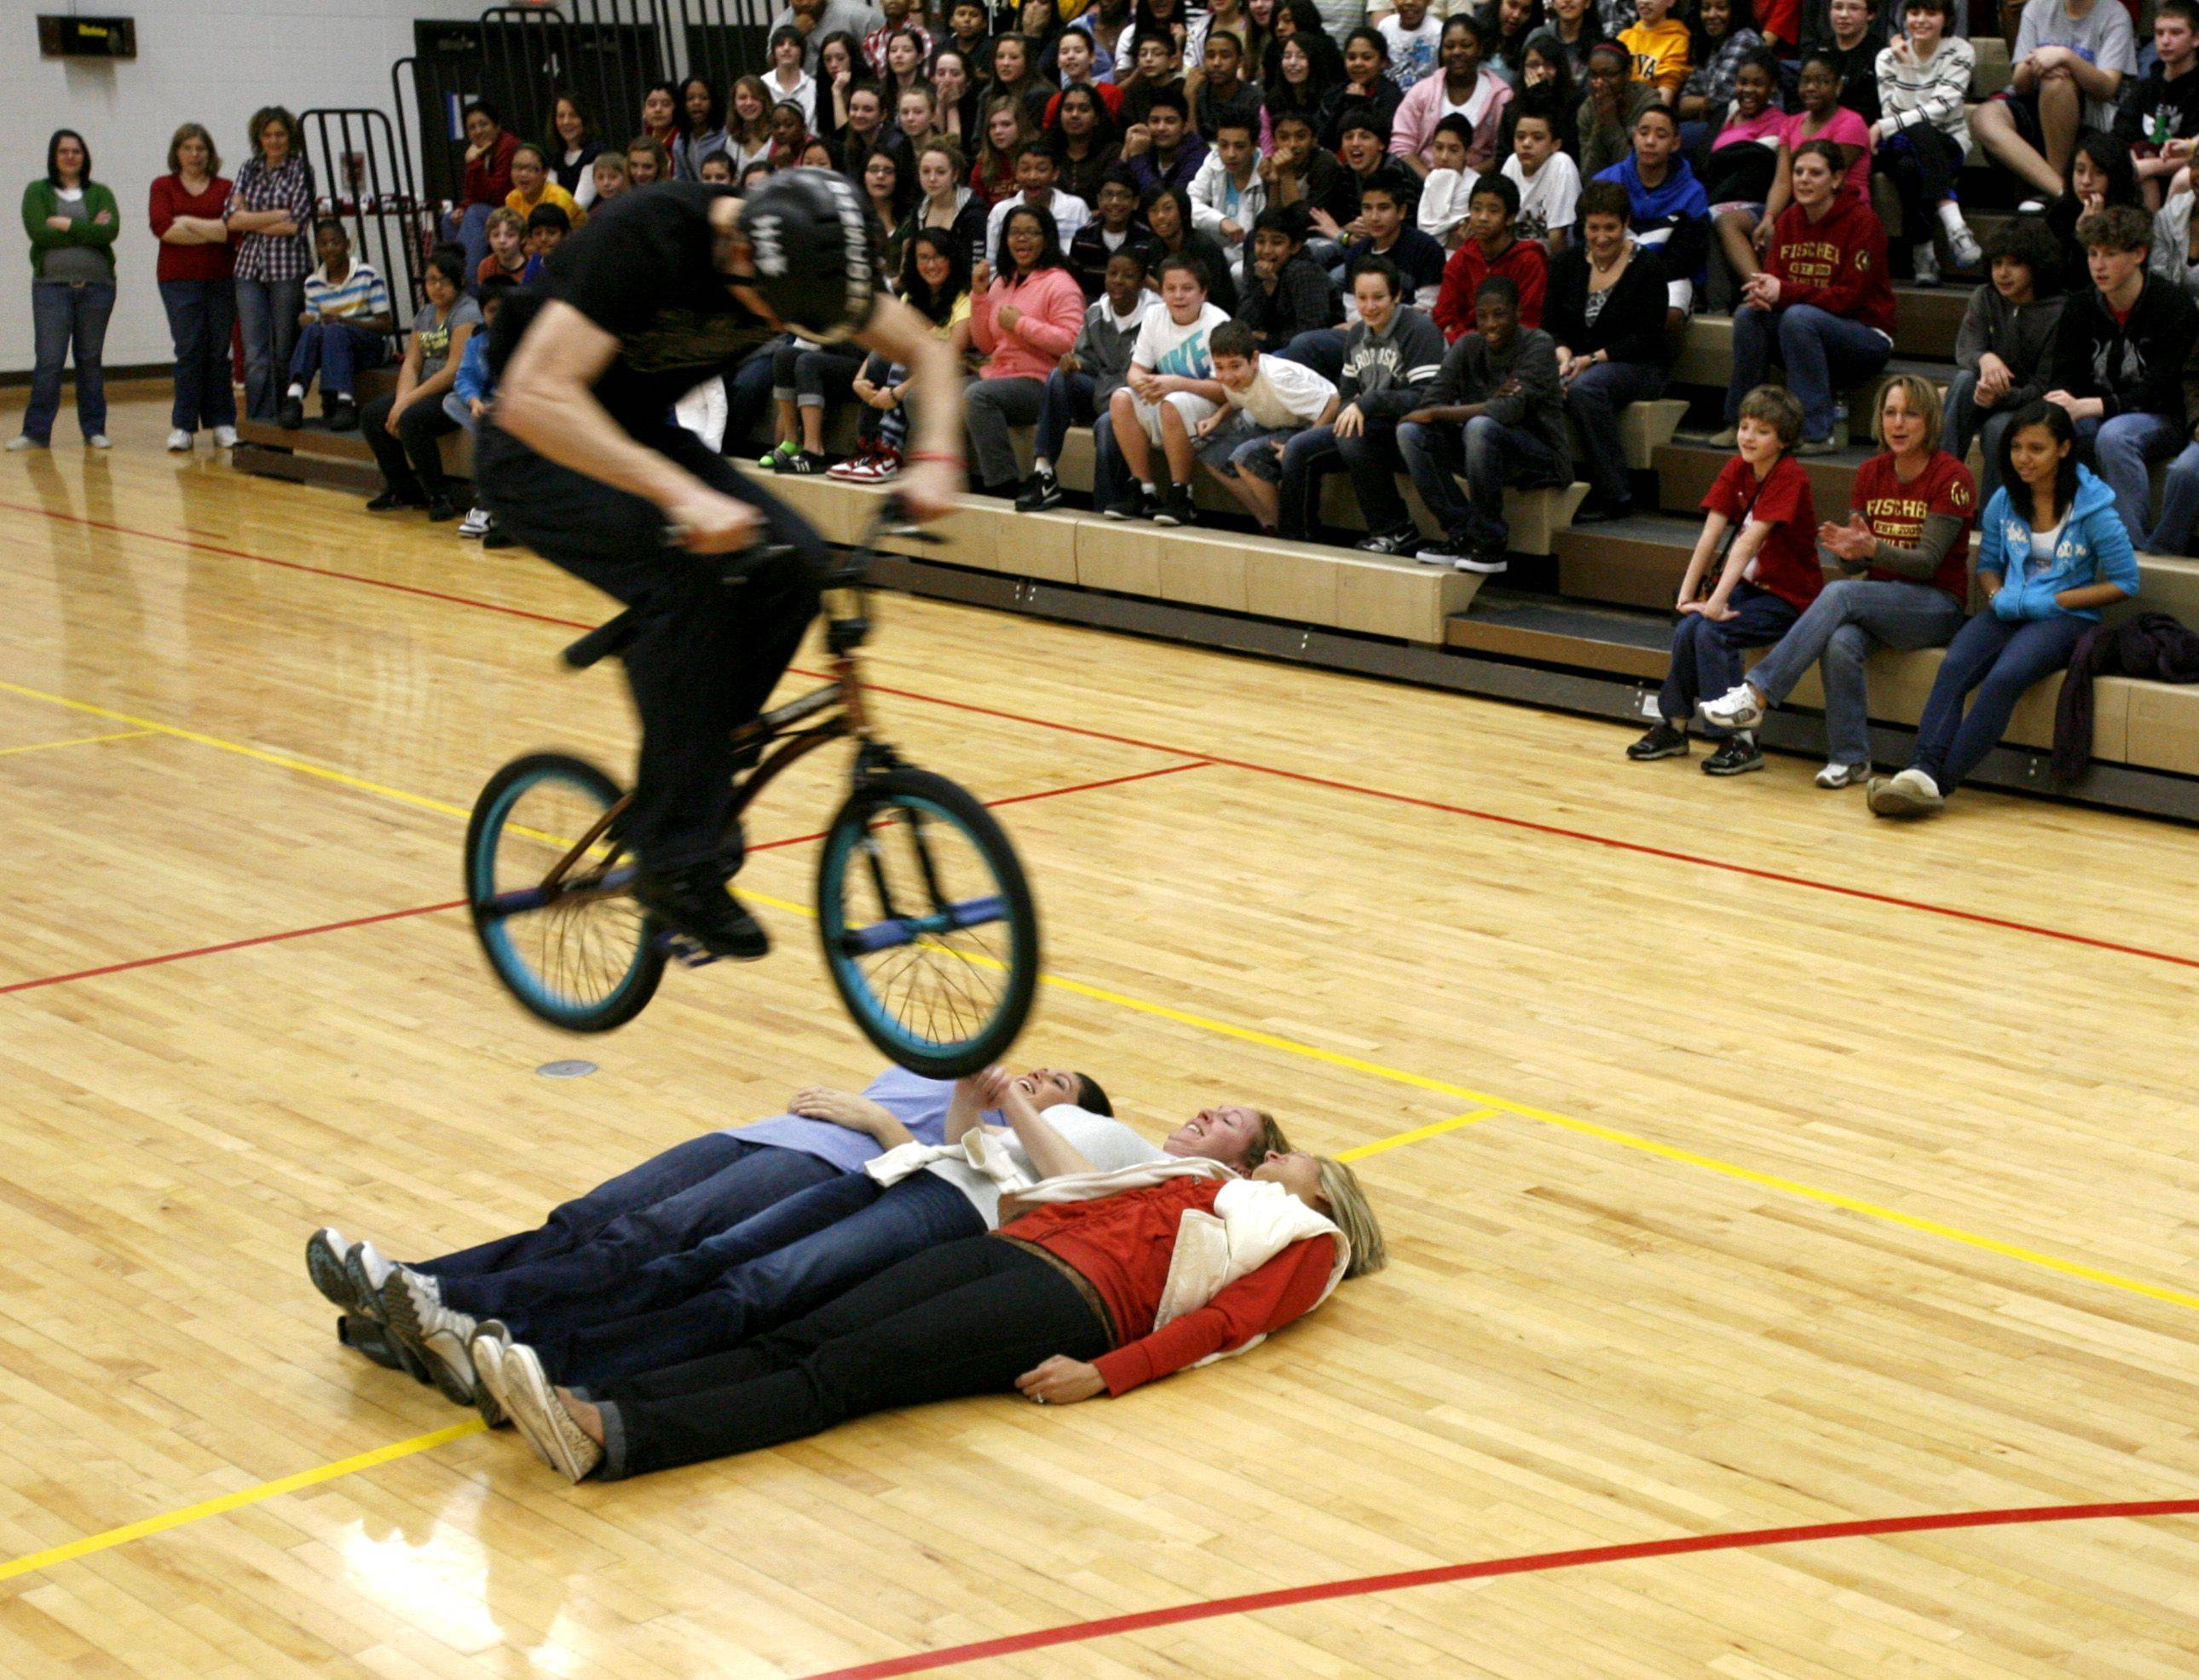 Fischer Middle School students, in Aurora, receive a visit from X-Games and Pro BMX rider Matt Wilhelm, who performed for students and delivered messages in perseverance, overcoming odds and bullying. Above, Wilhelm jumps over teachers Jennifer Klen, Melissa Cullo and Michelle Nalon.